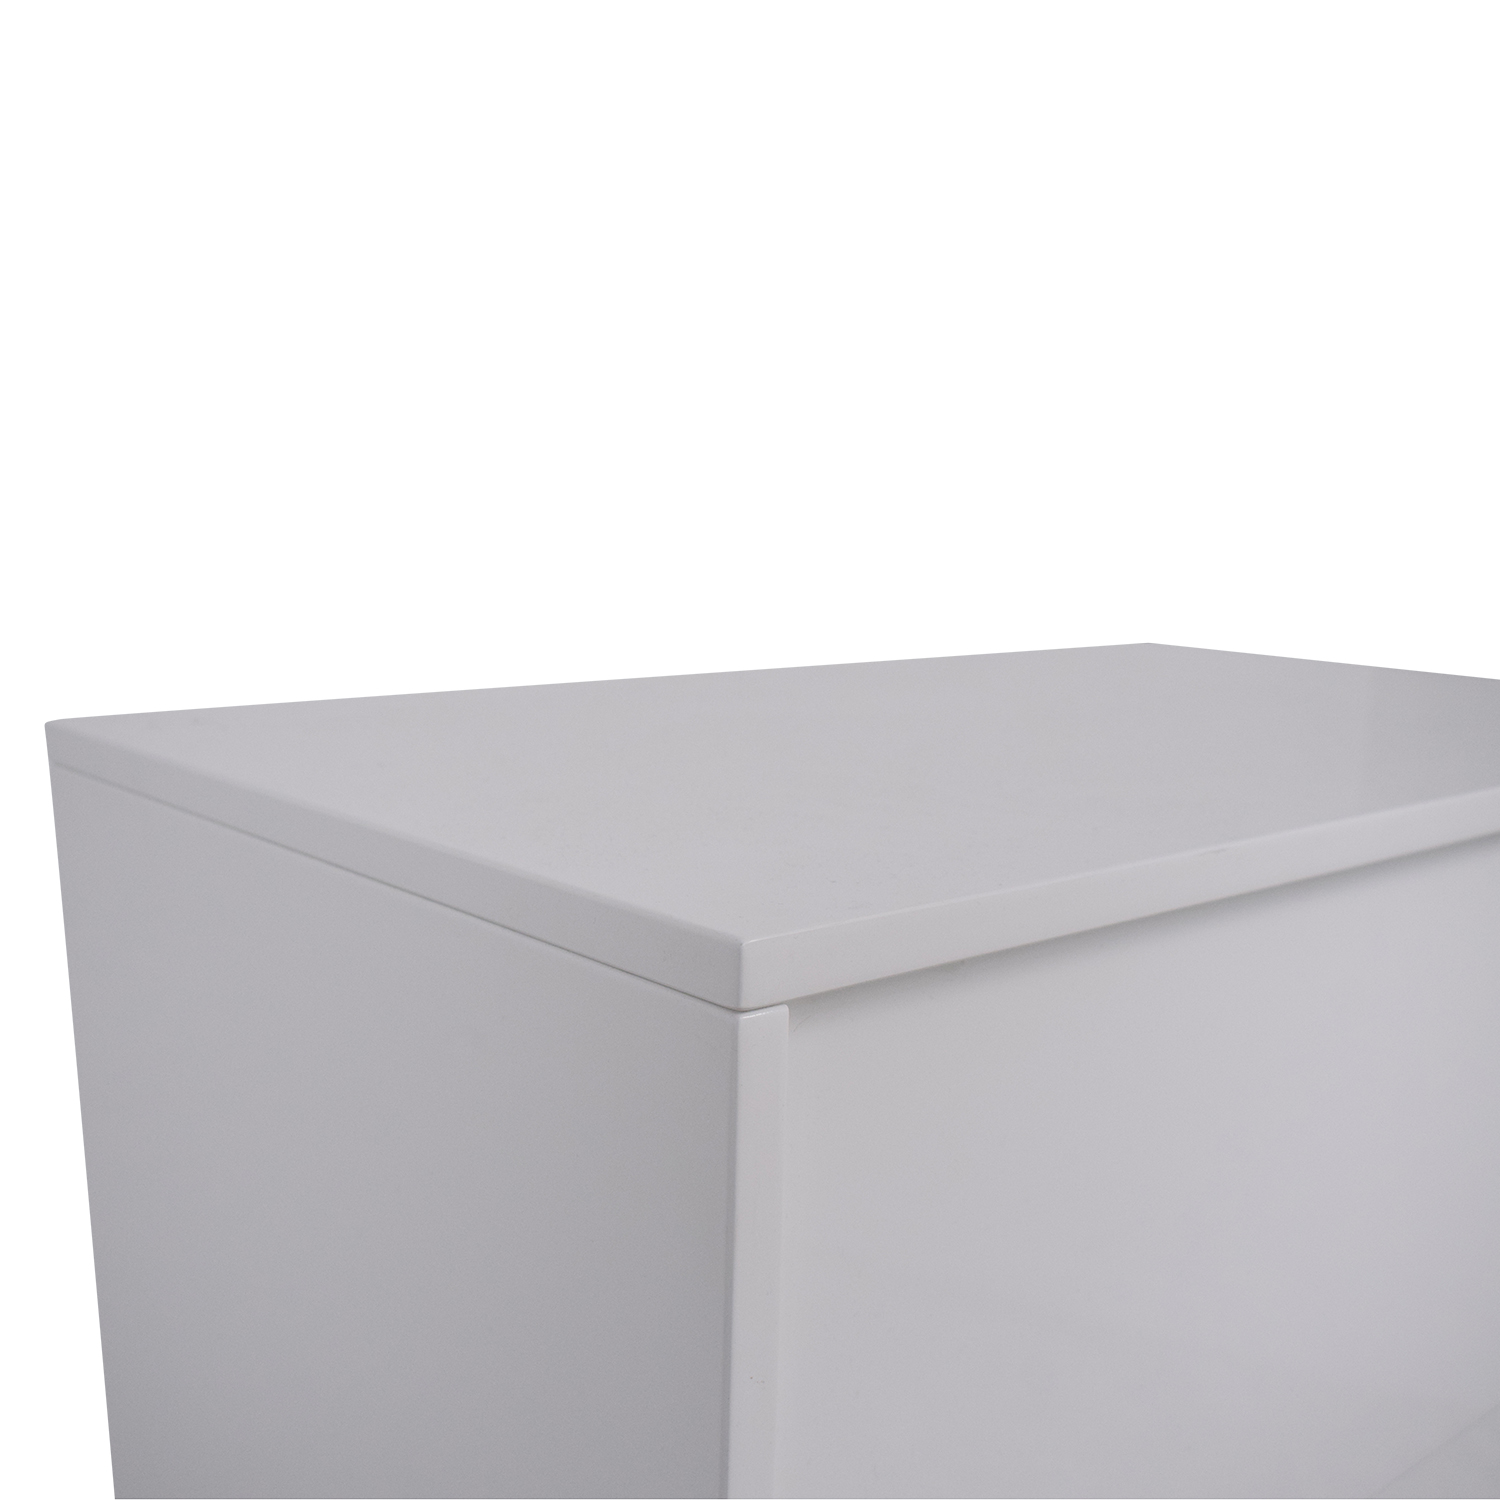 CB2 CB2 Shake Tall Four Drawer Chest on sale